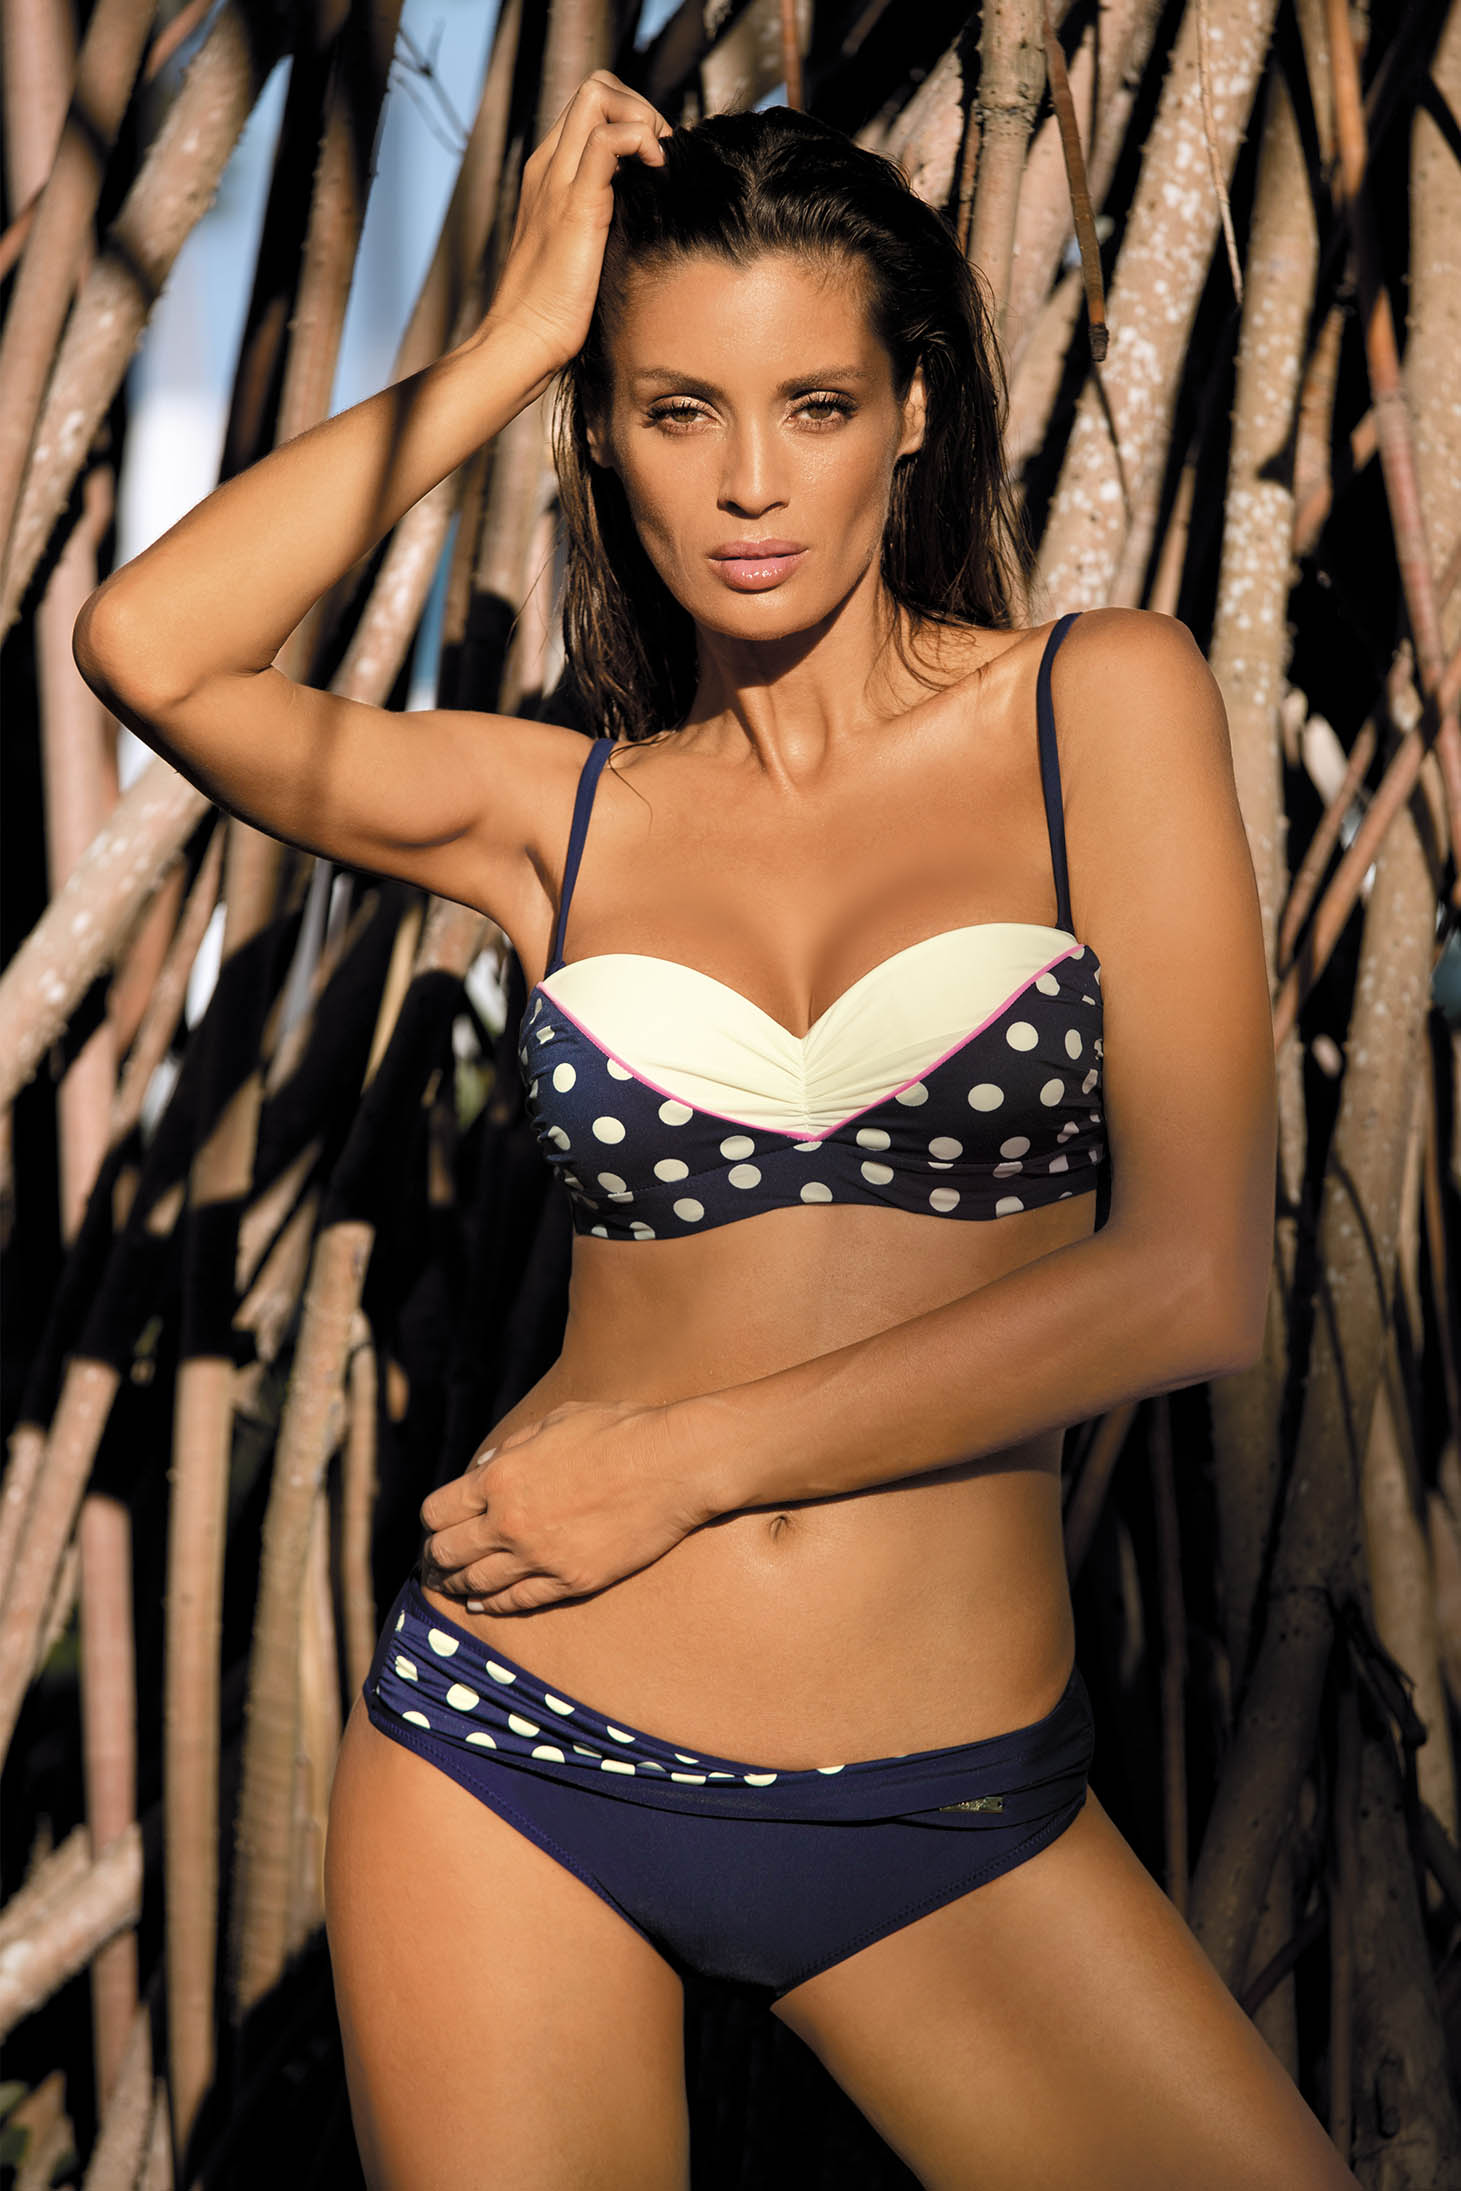 Darkblue swimsuit 2 pieces normal bikinis dots print with push-up bra